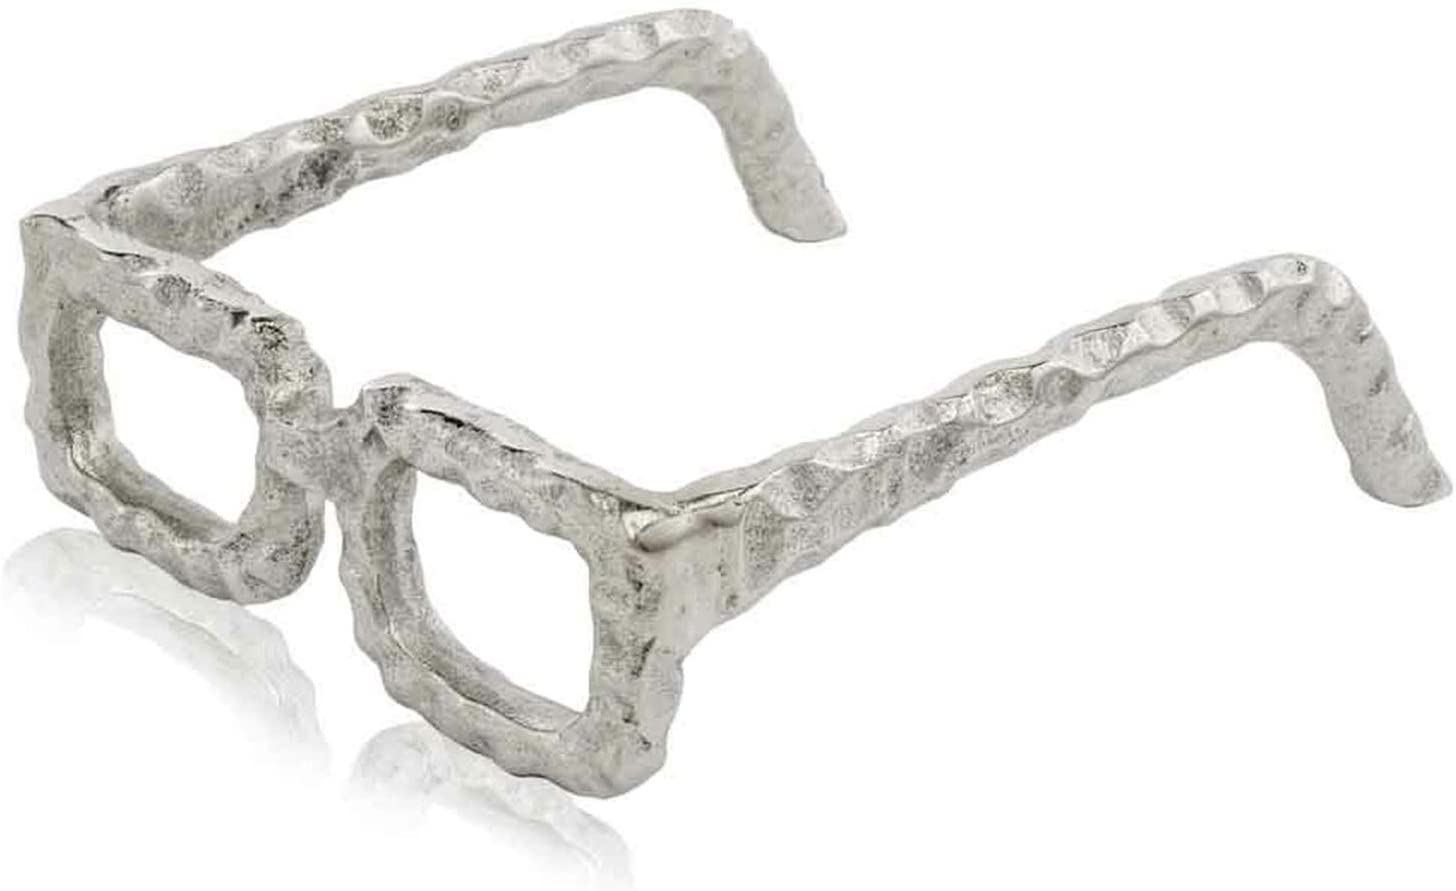 Modern Day Accents Silver, Sunglasses Sculpture, Trendy, Aluminum, Figurine, Table Top, Home and Office Decor, Spectacles, Square Glasses, Modern, 6